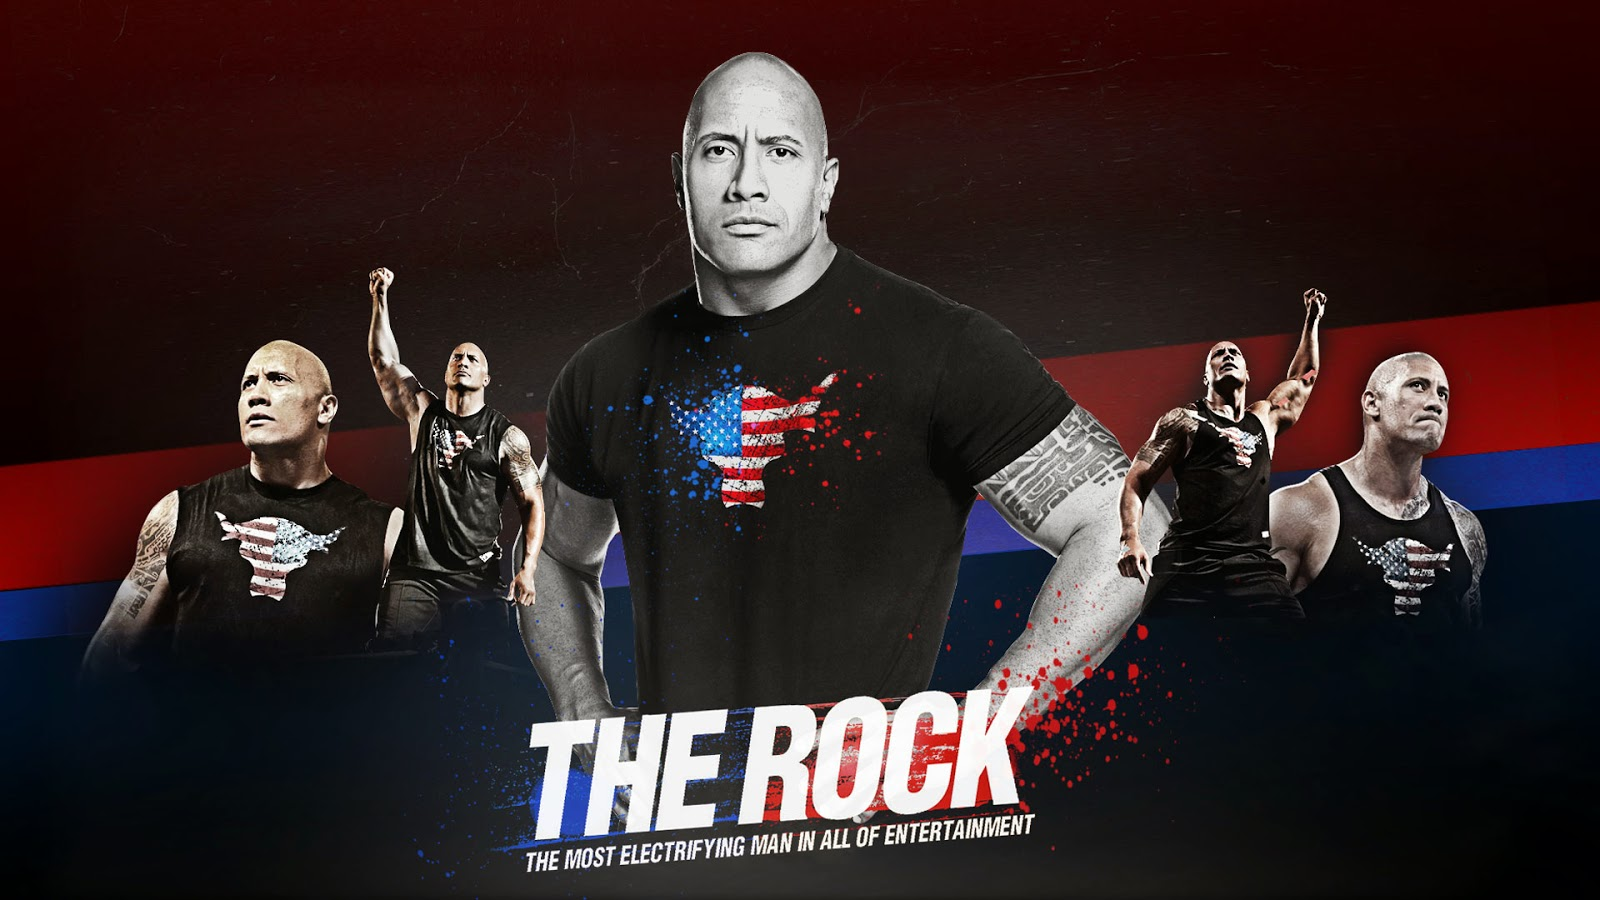 the rock wallpaper for computer - photo #14